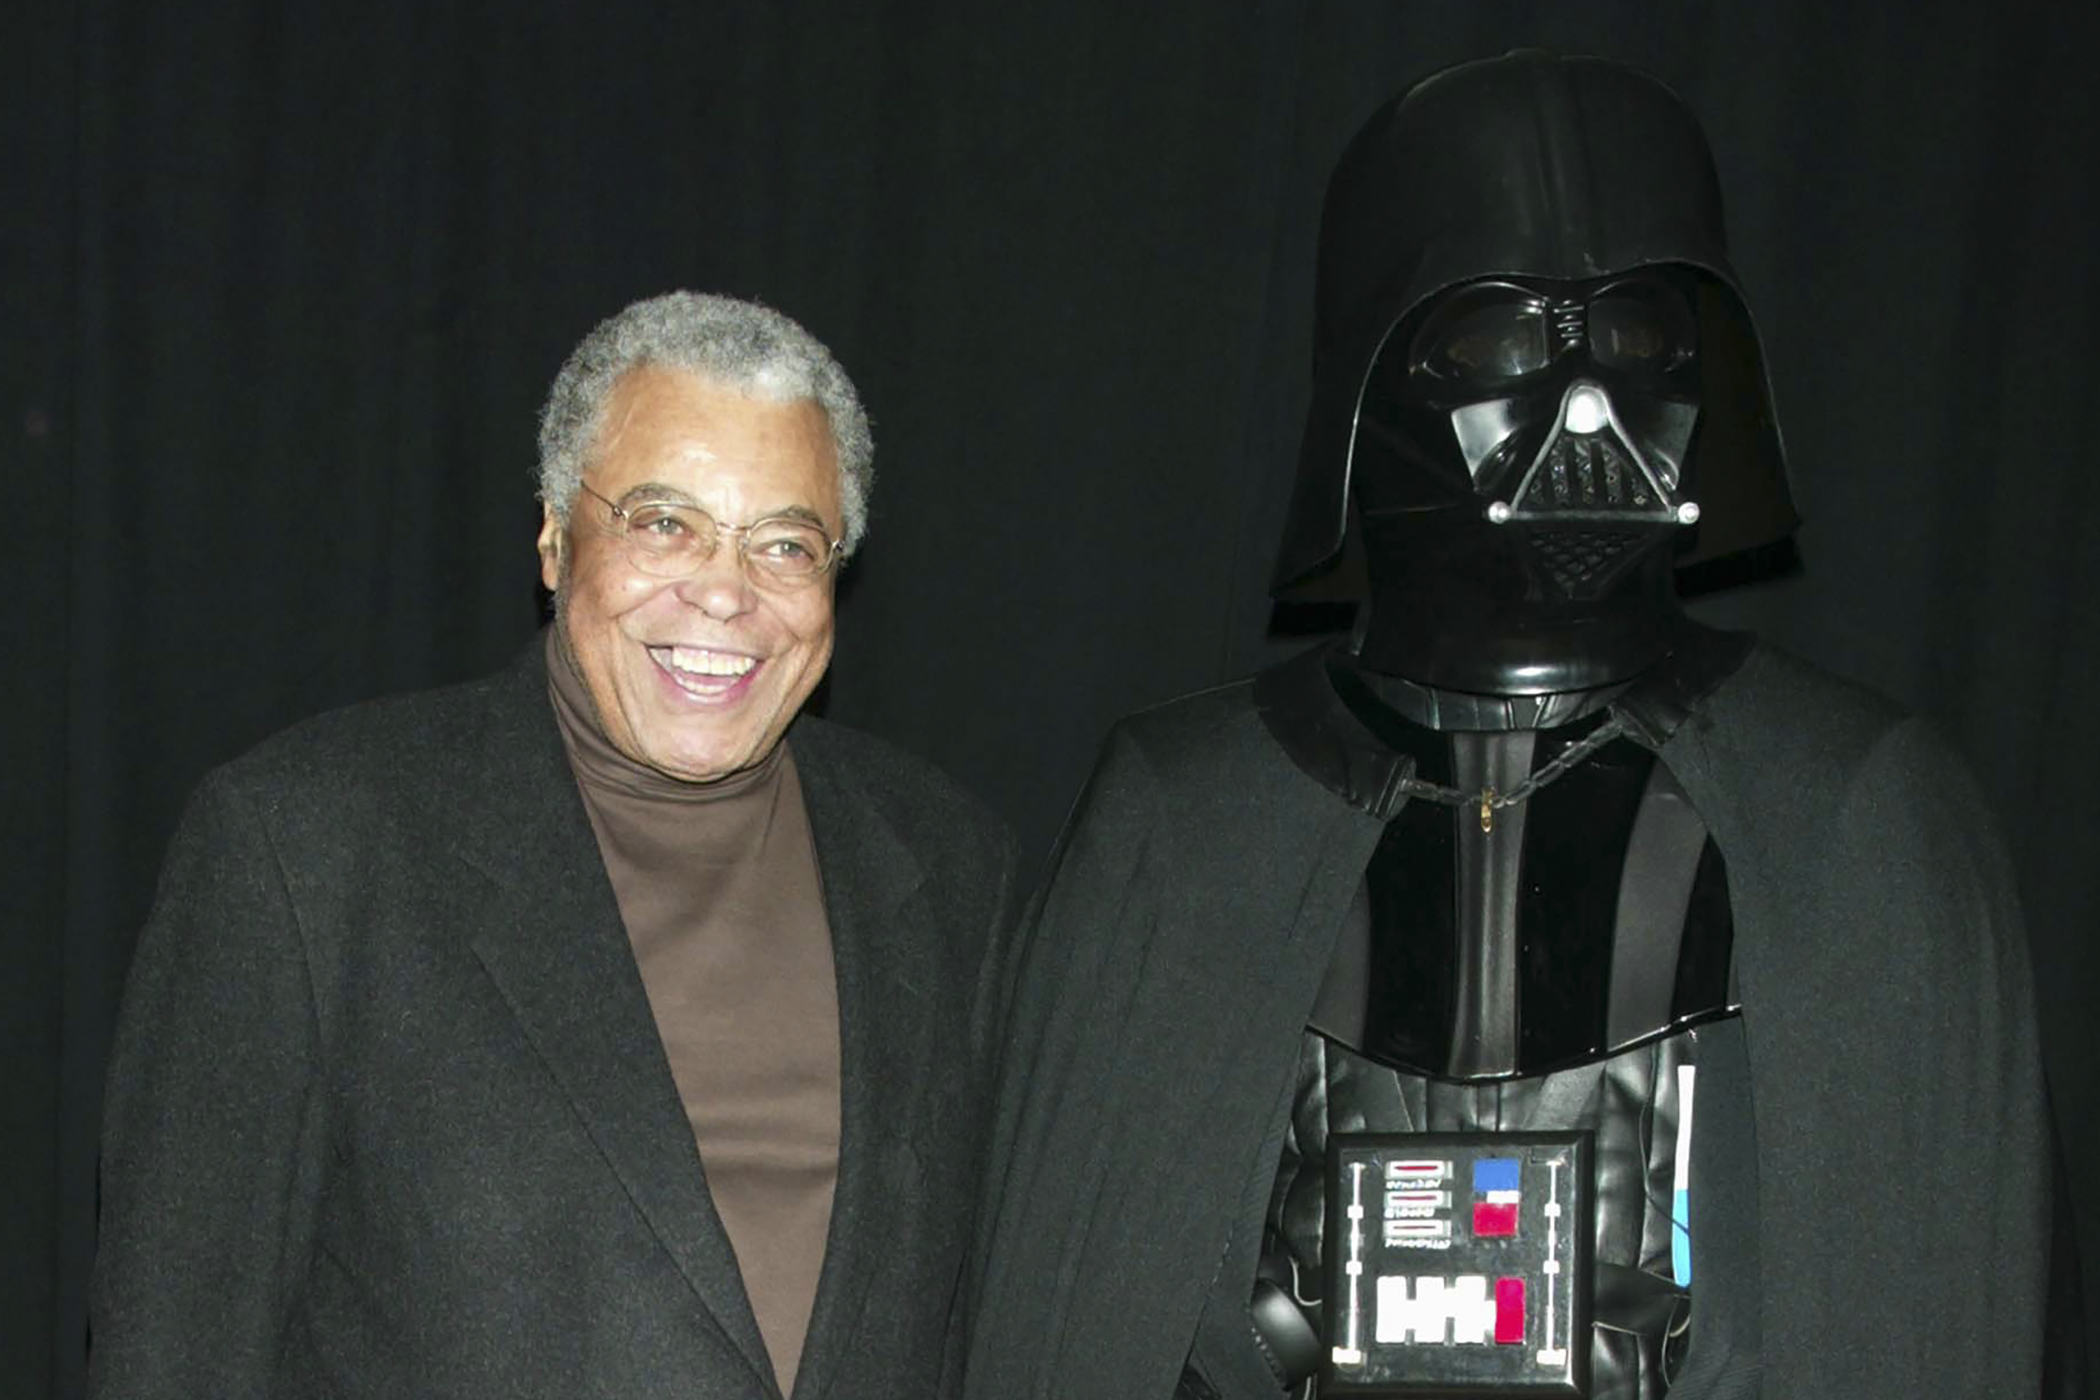 James Earl Jones & Darth Vader